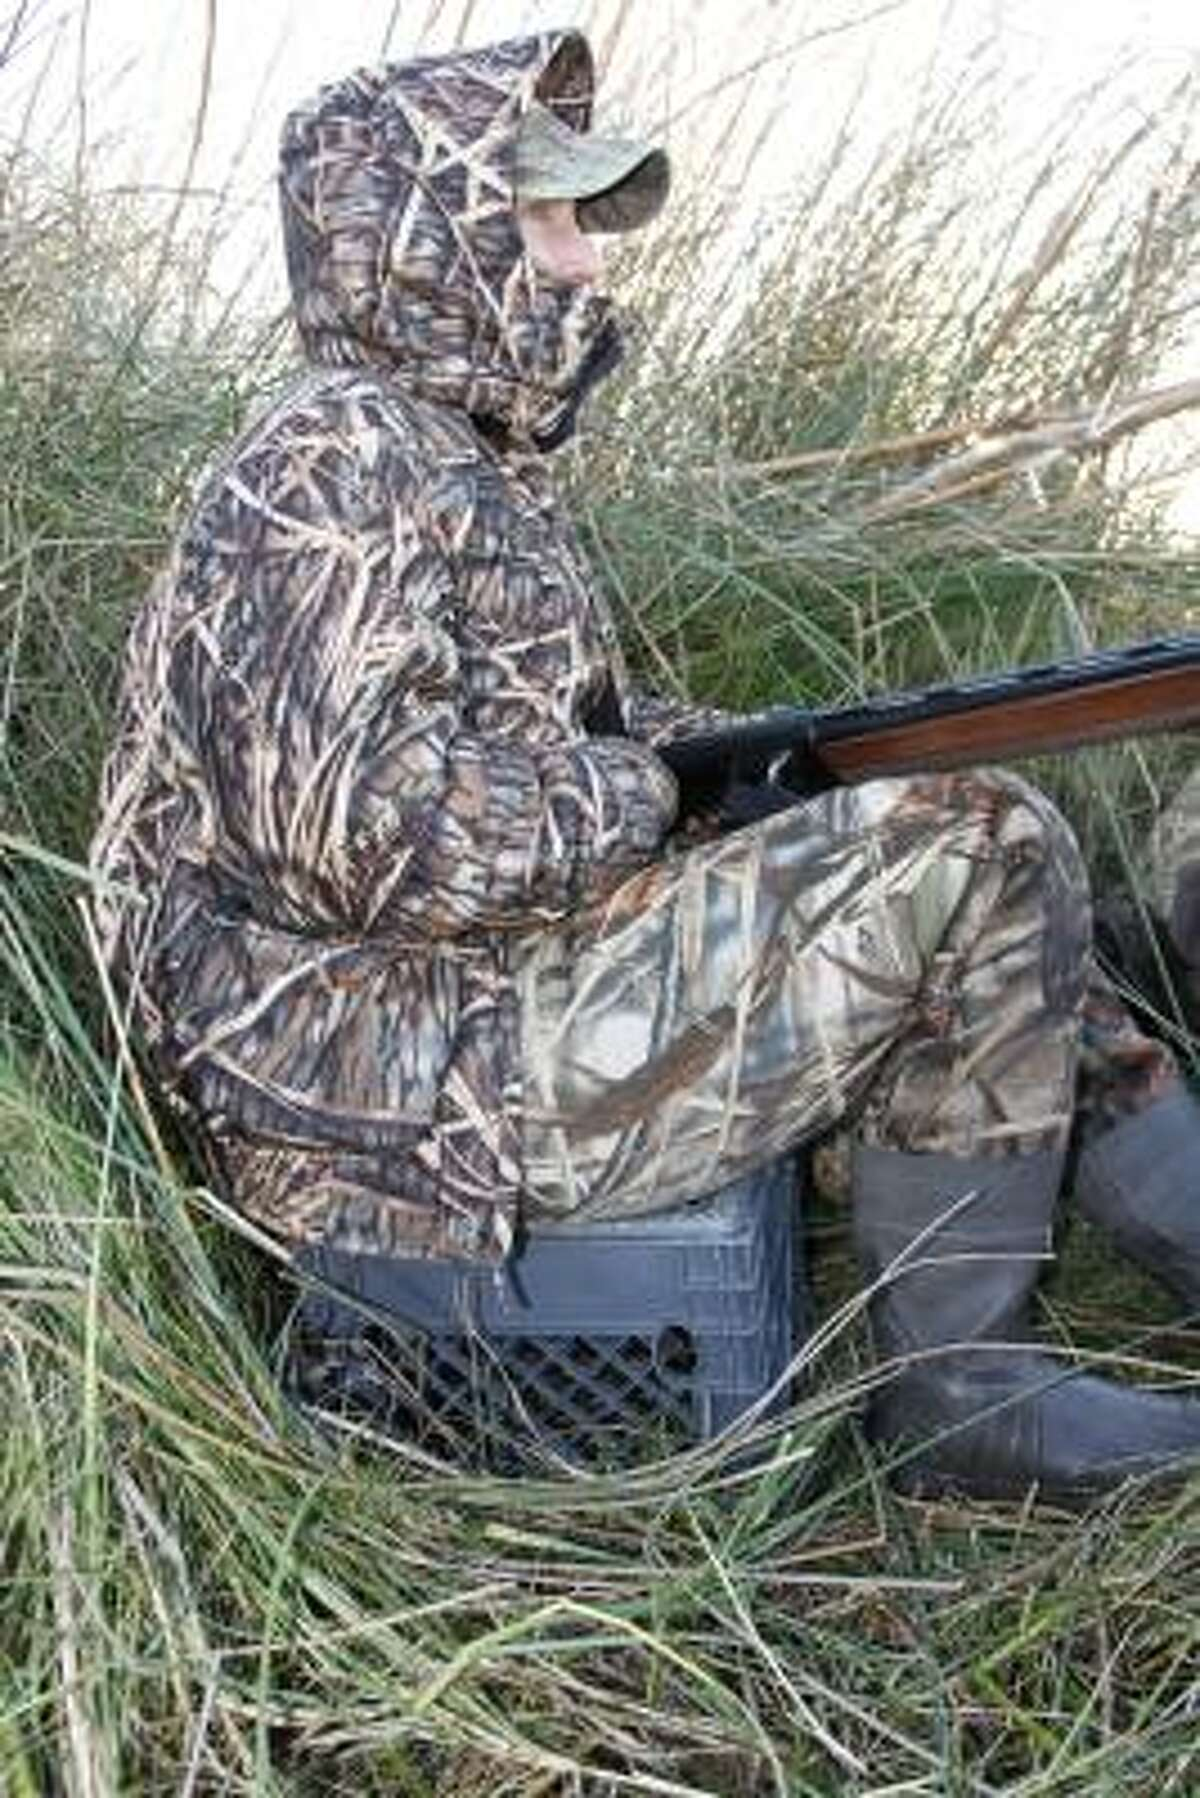 Waterproof, nearly indestructible, and the right size for dozens of outdoor uses, including a near-perfect seat for mobile waterfowlers, square containers made from heavy plastic are amazingly versatile pieces of outdoors gear. But beware of laws regulating possession of privately owned